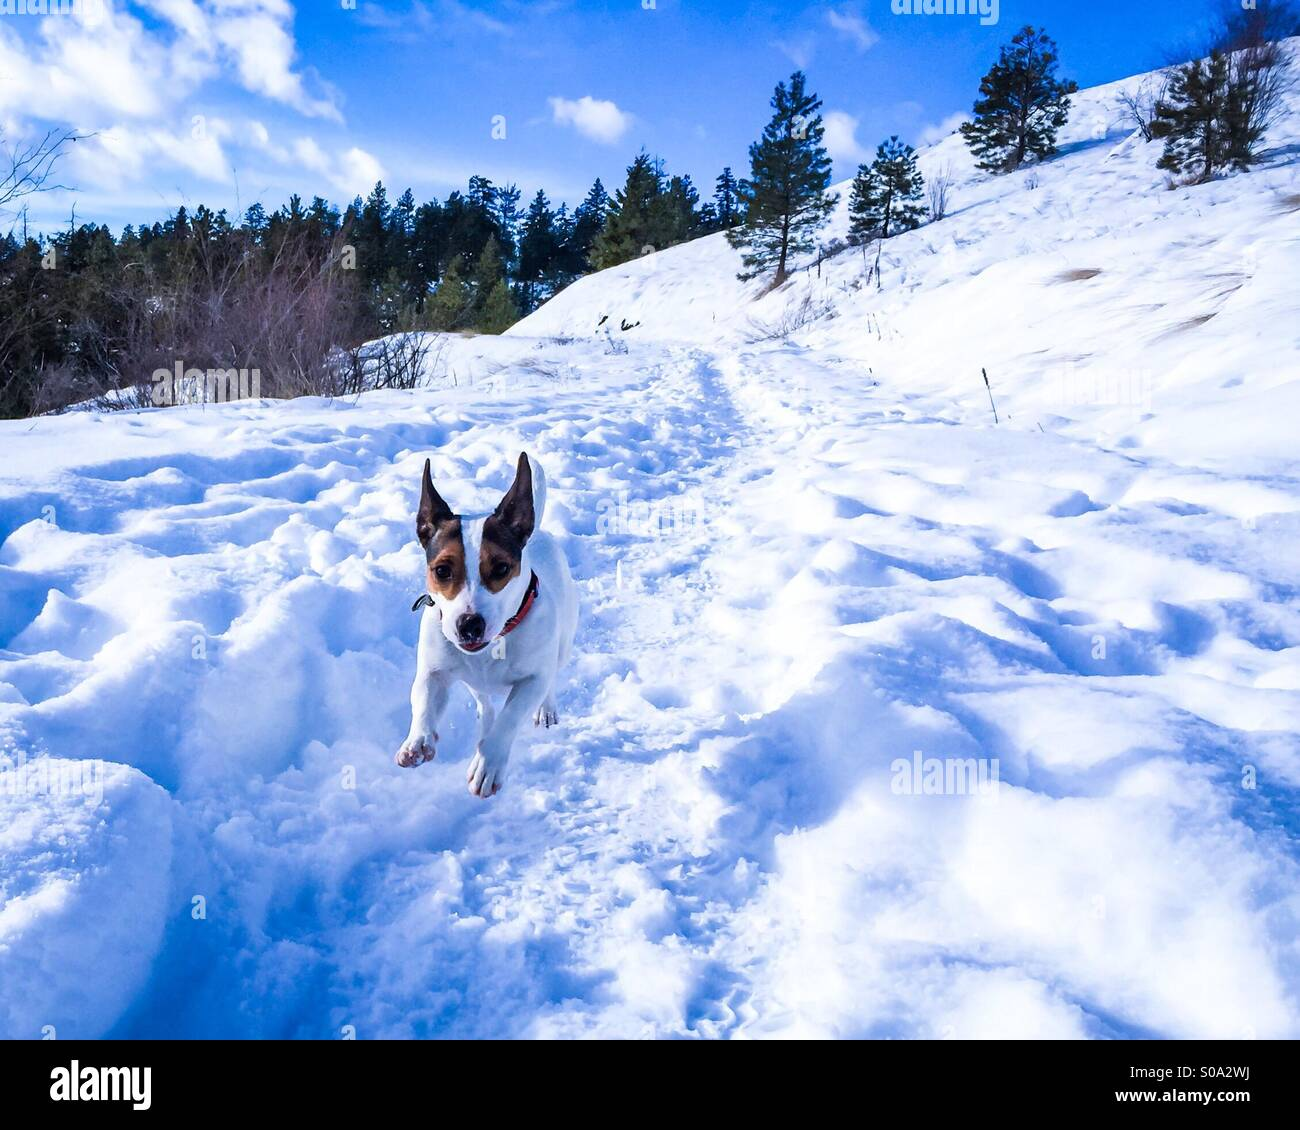 Leaping in the snow. Dog speeding towards the camera with excitement. - Stock Image